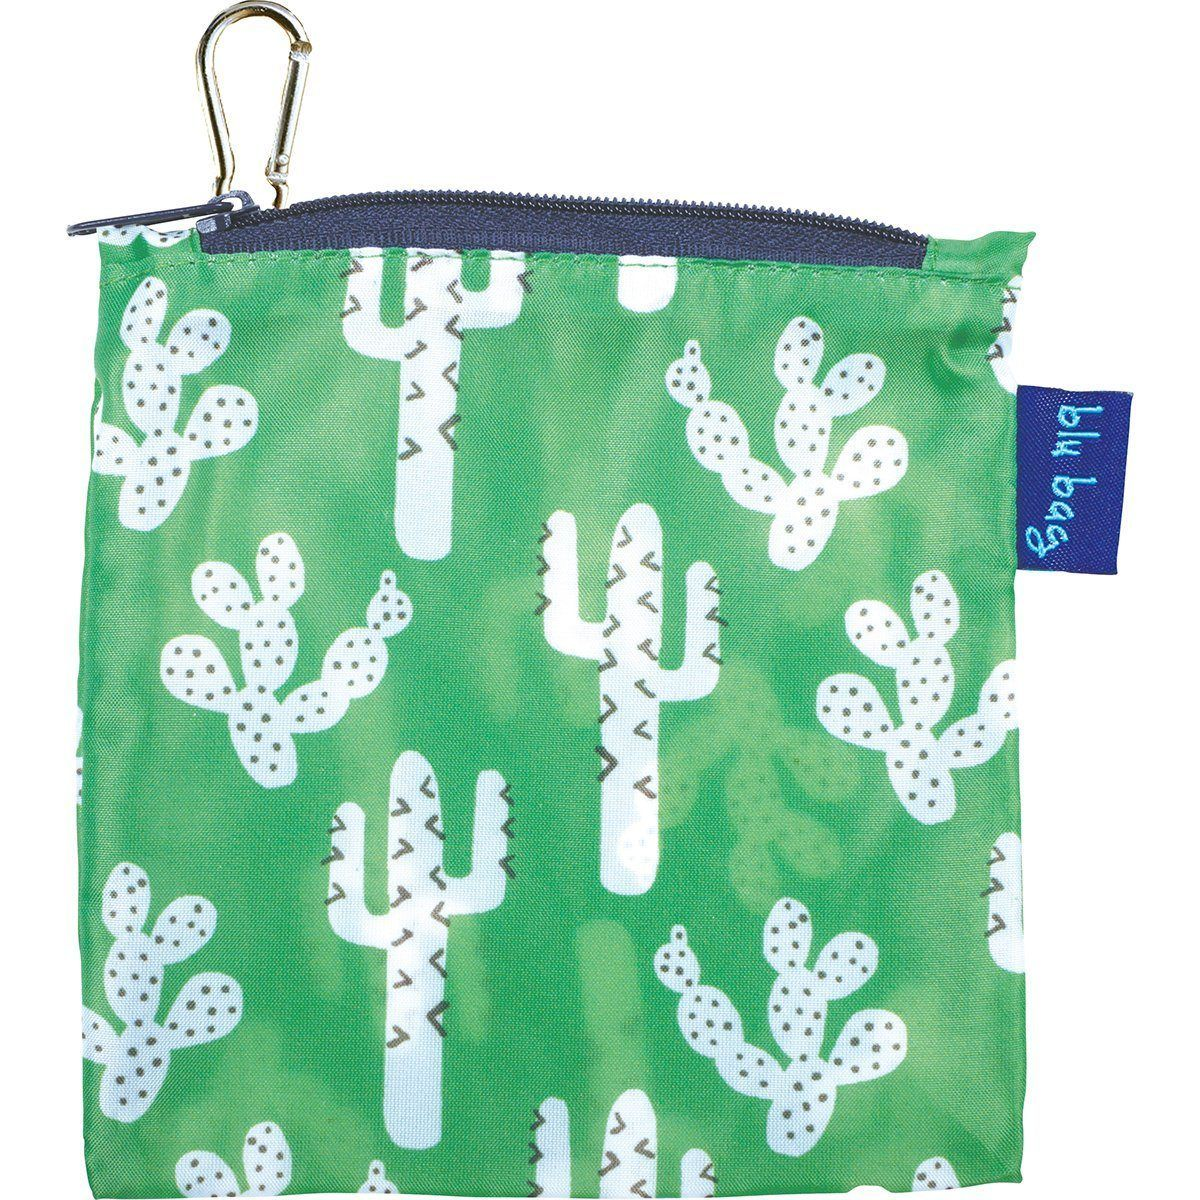 Cactus Green Blu Bag Reusable Shopping Bag - rockflowerpaper LLC